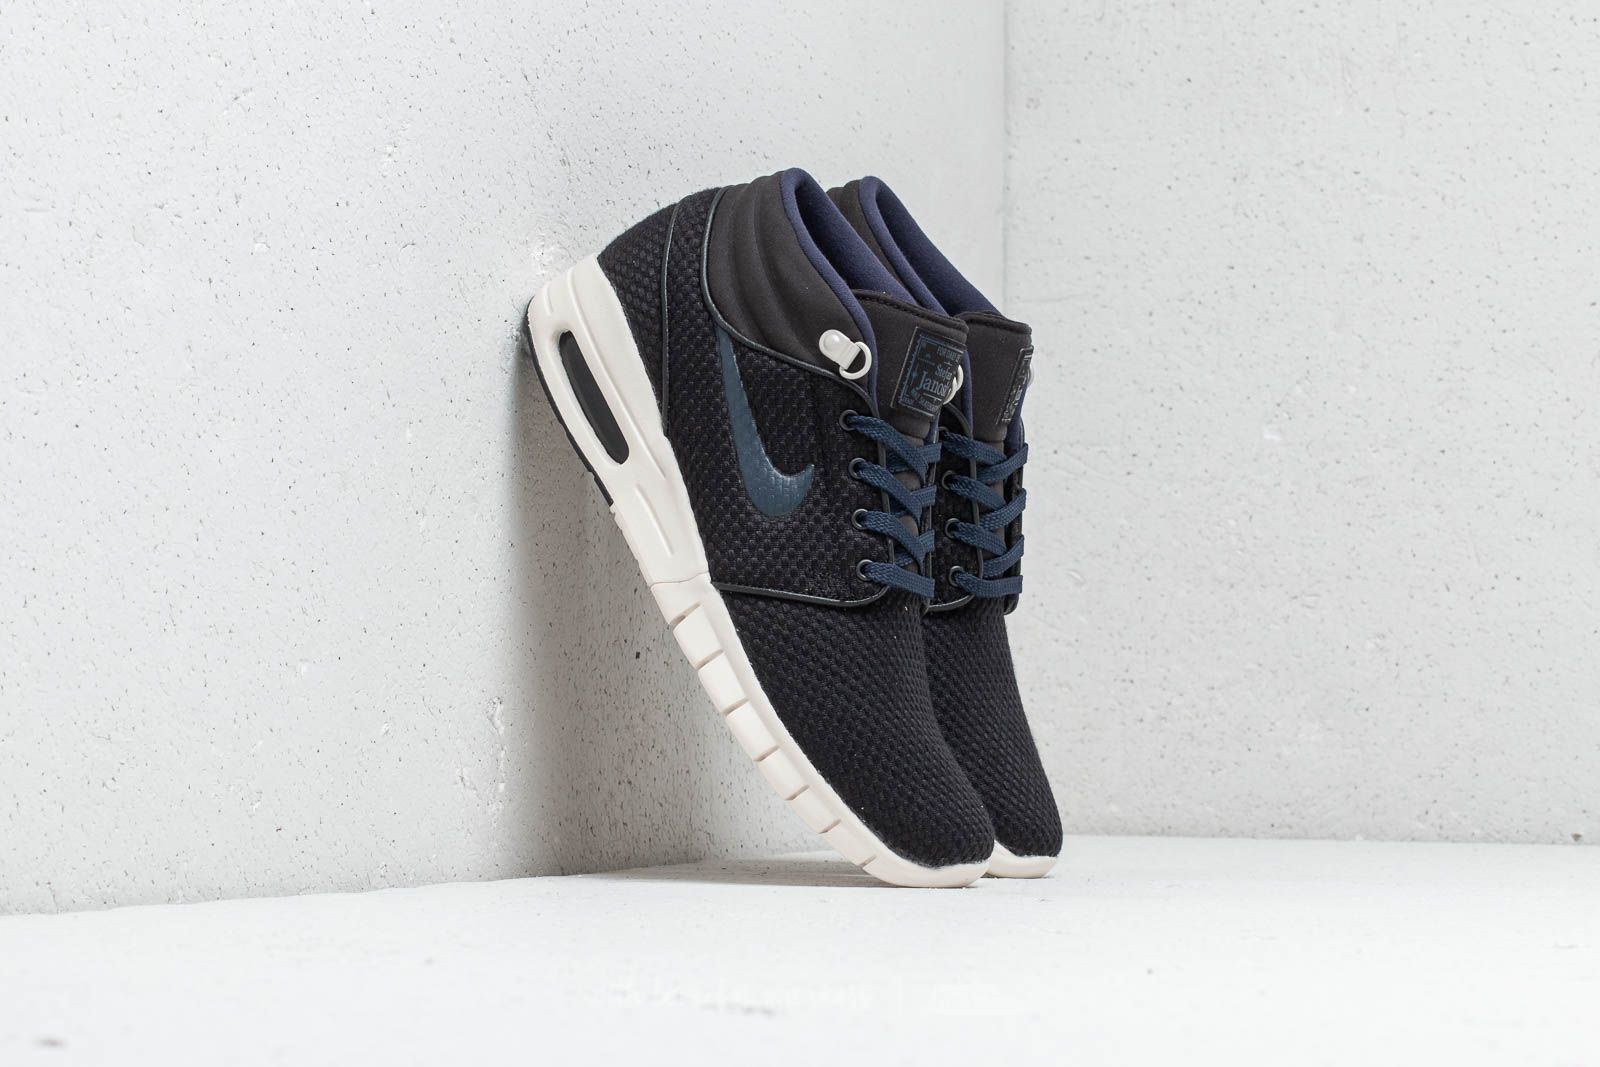 competitive price 0ef1b 59f5d Nike Stefan Janoski Max Mid Black  Obsidian-Phantom at a great price 89 €